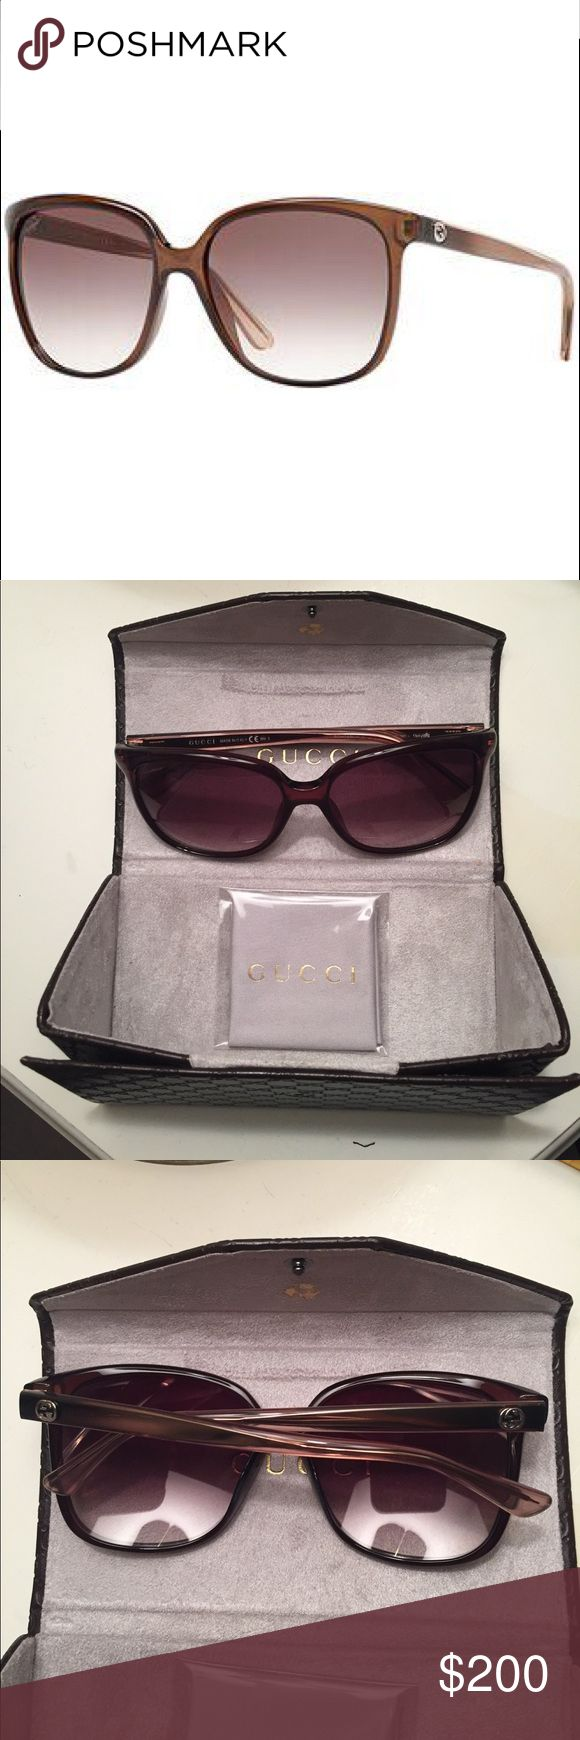 NWOT Gucci cat eye sunglasses Authentic GG3696 brown and rose gold sunglasses. NWOT. Never worn. Comes with case, cleaning cloth and Gucci shopping bag. I just have too many brown sunglasses but this is a perfect oversized pair Gucci Accessories Sunglasses